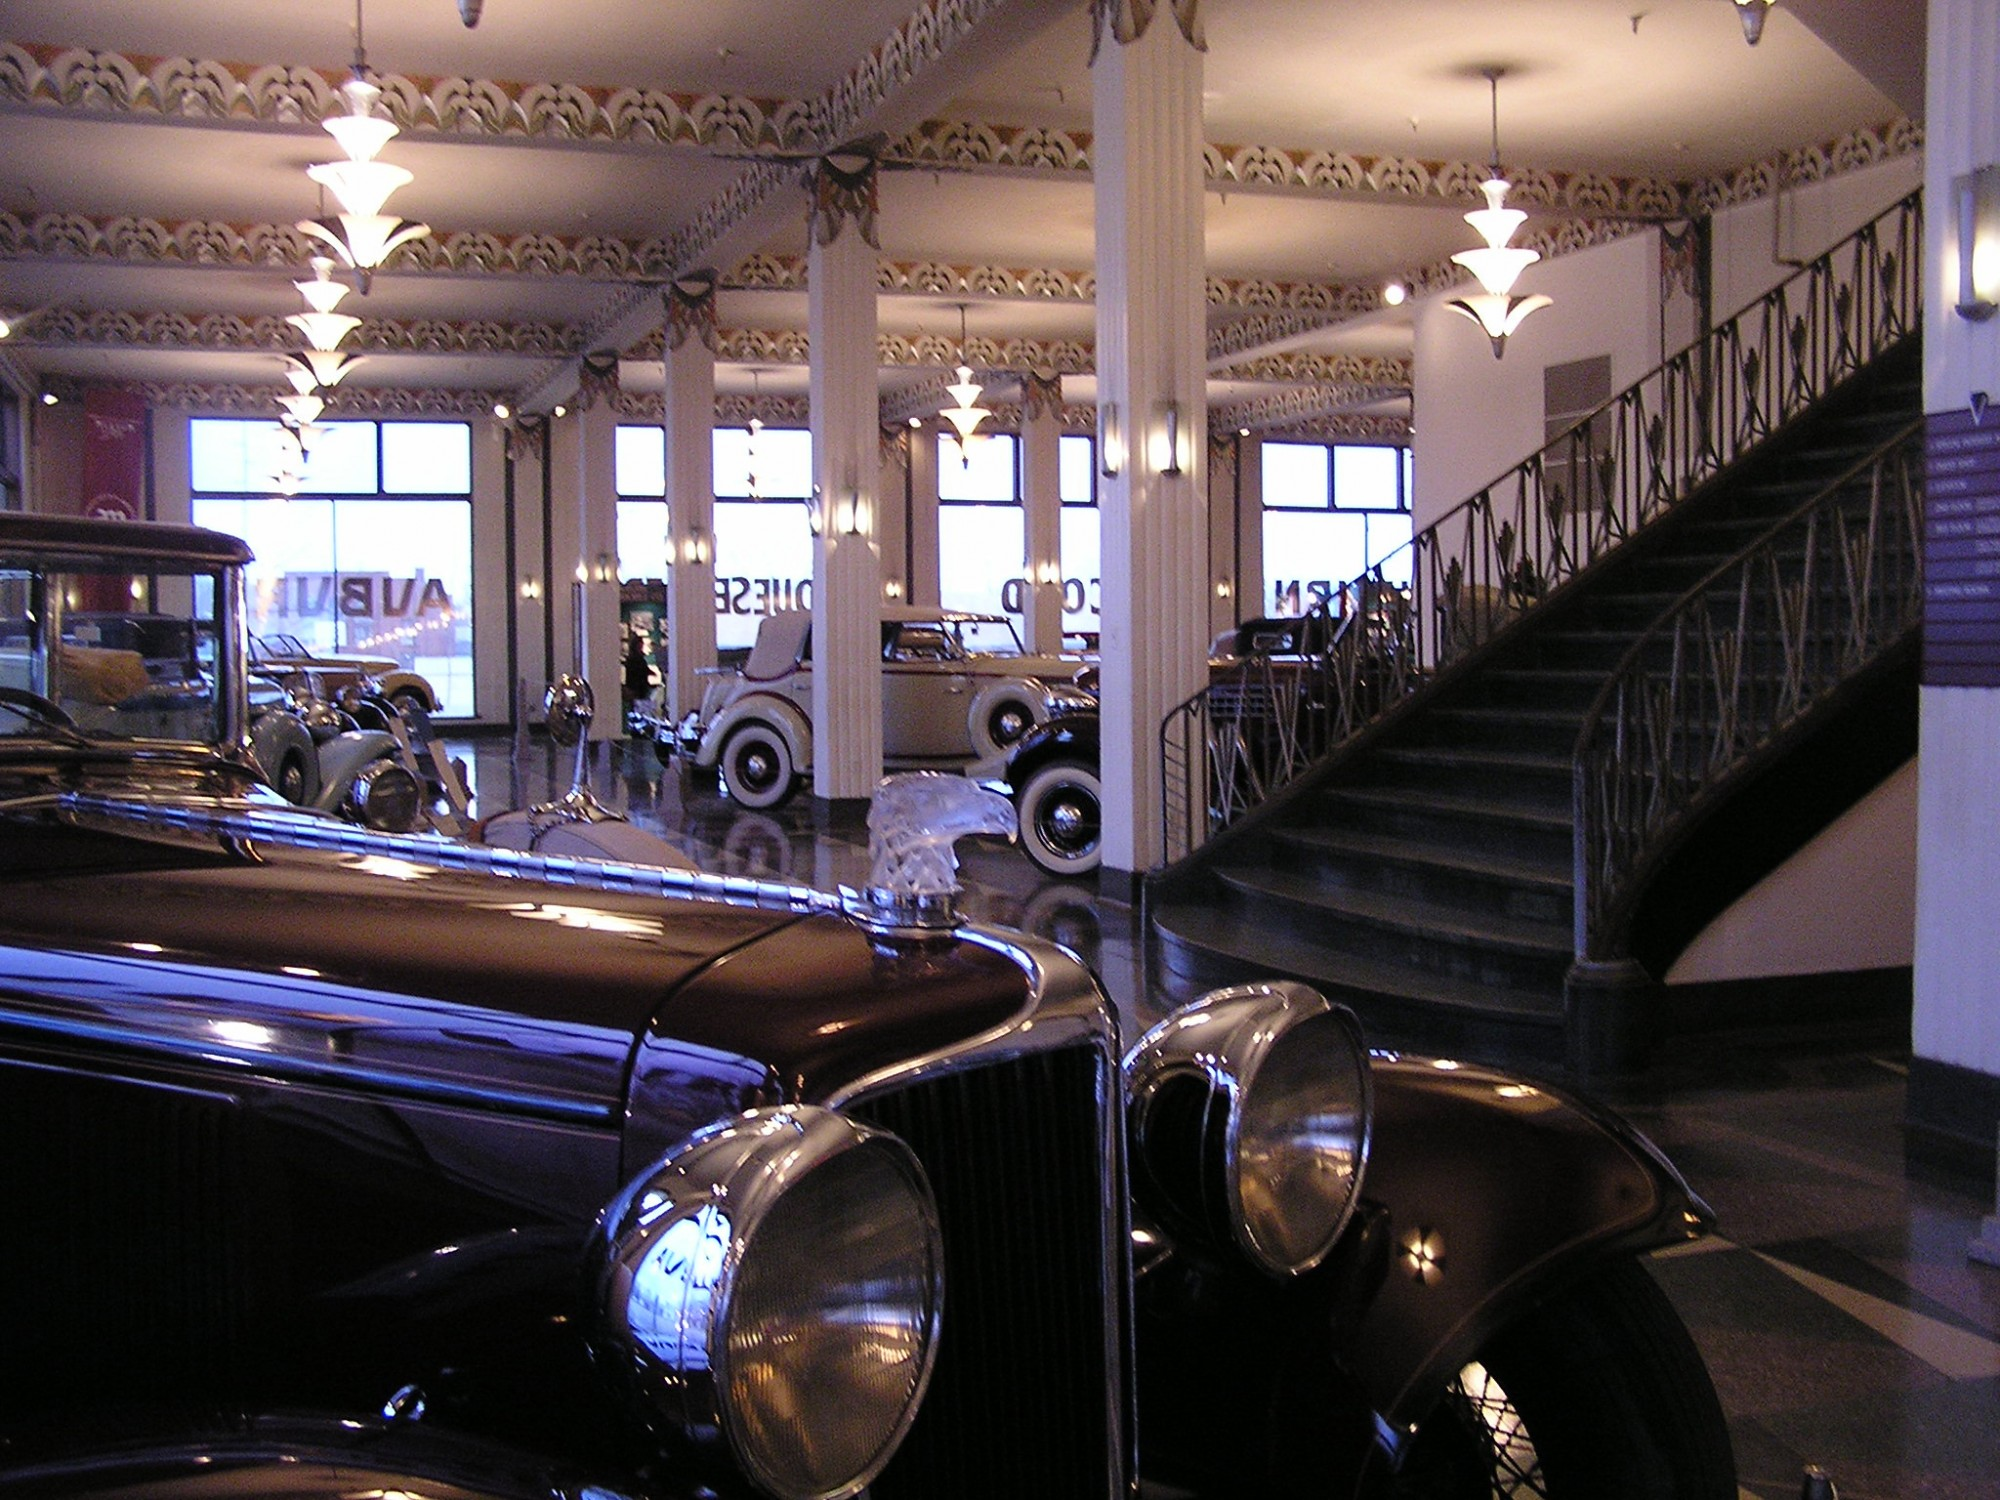 auburn-cord-duesenberg-museum-showroom-hood-ornament-stairs-indiana